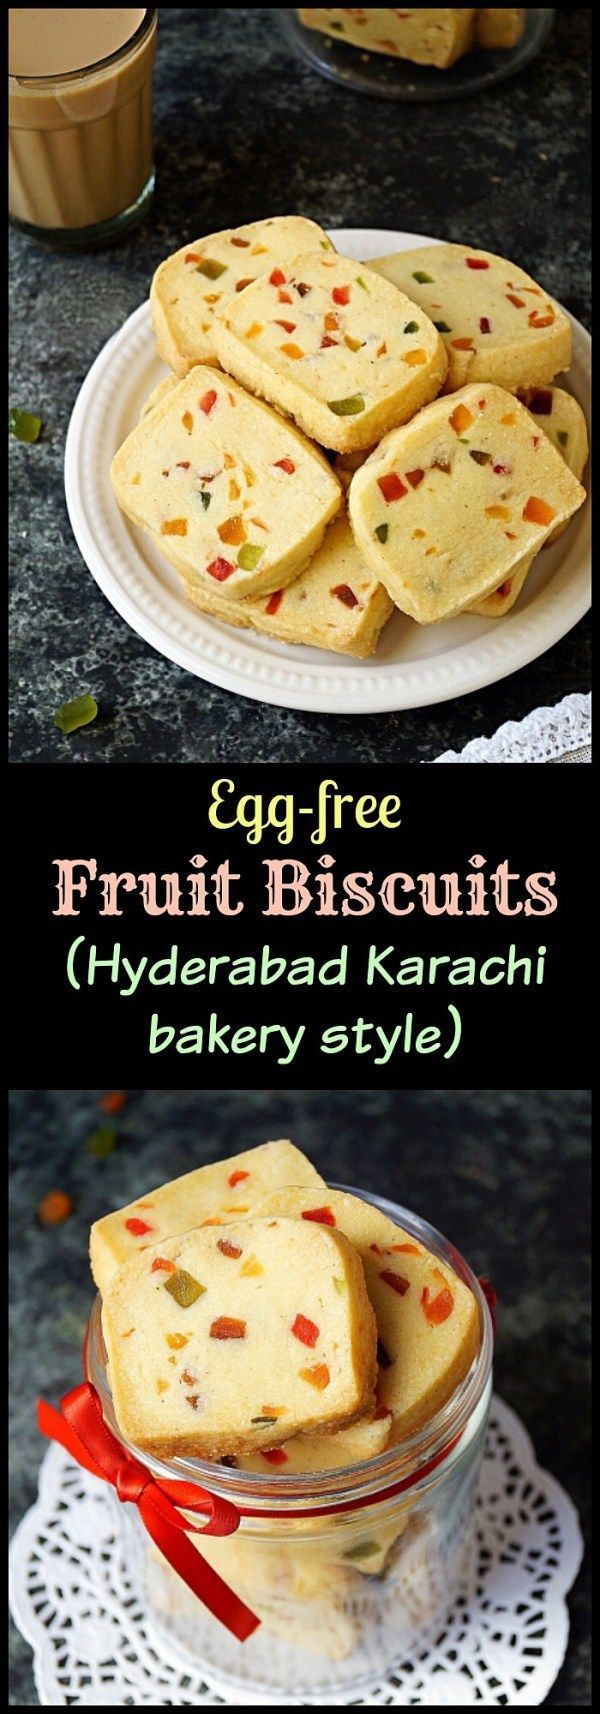 These fruit biscuits (eggless), Hyderabad Karachi bakery style are tender, crumbly & just melt in the mouth. Learn how to make them at home, with easily available pantry ingredients. #karachifruitbiscuits #egglesstuttifrutticookies #cookies #eggless @aromaticessence